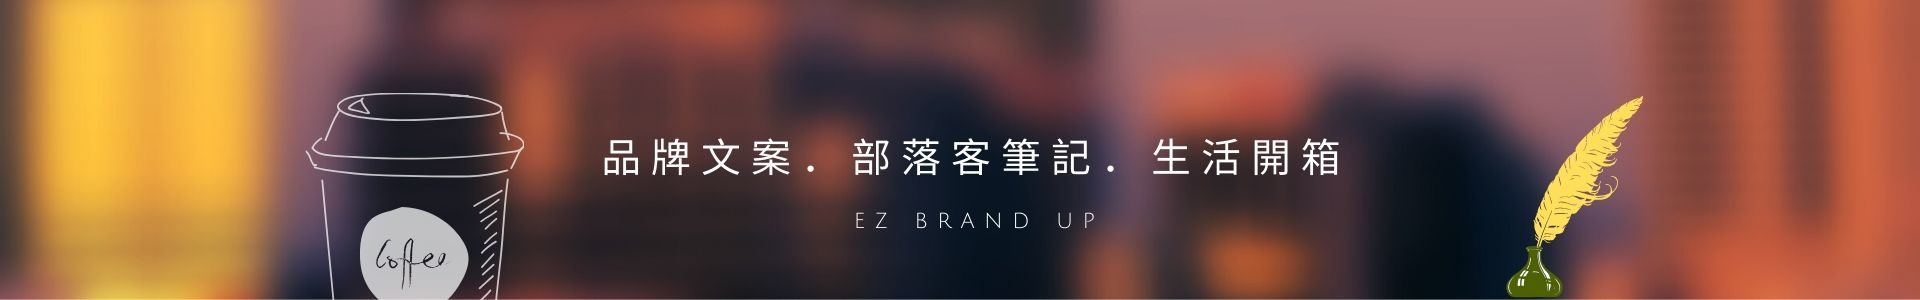 cropped-EZ-Brand-Up-Header-Banner-2020-1.3.1v-2.jpg